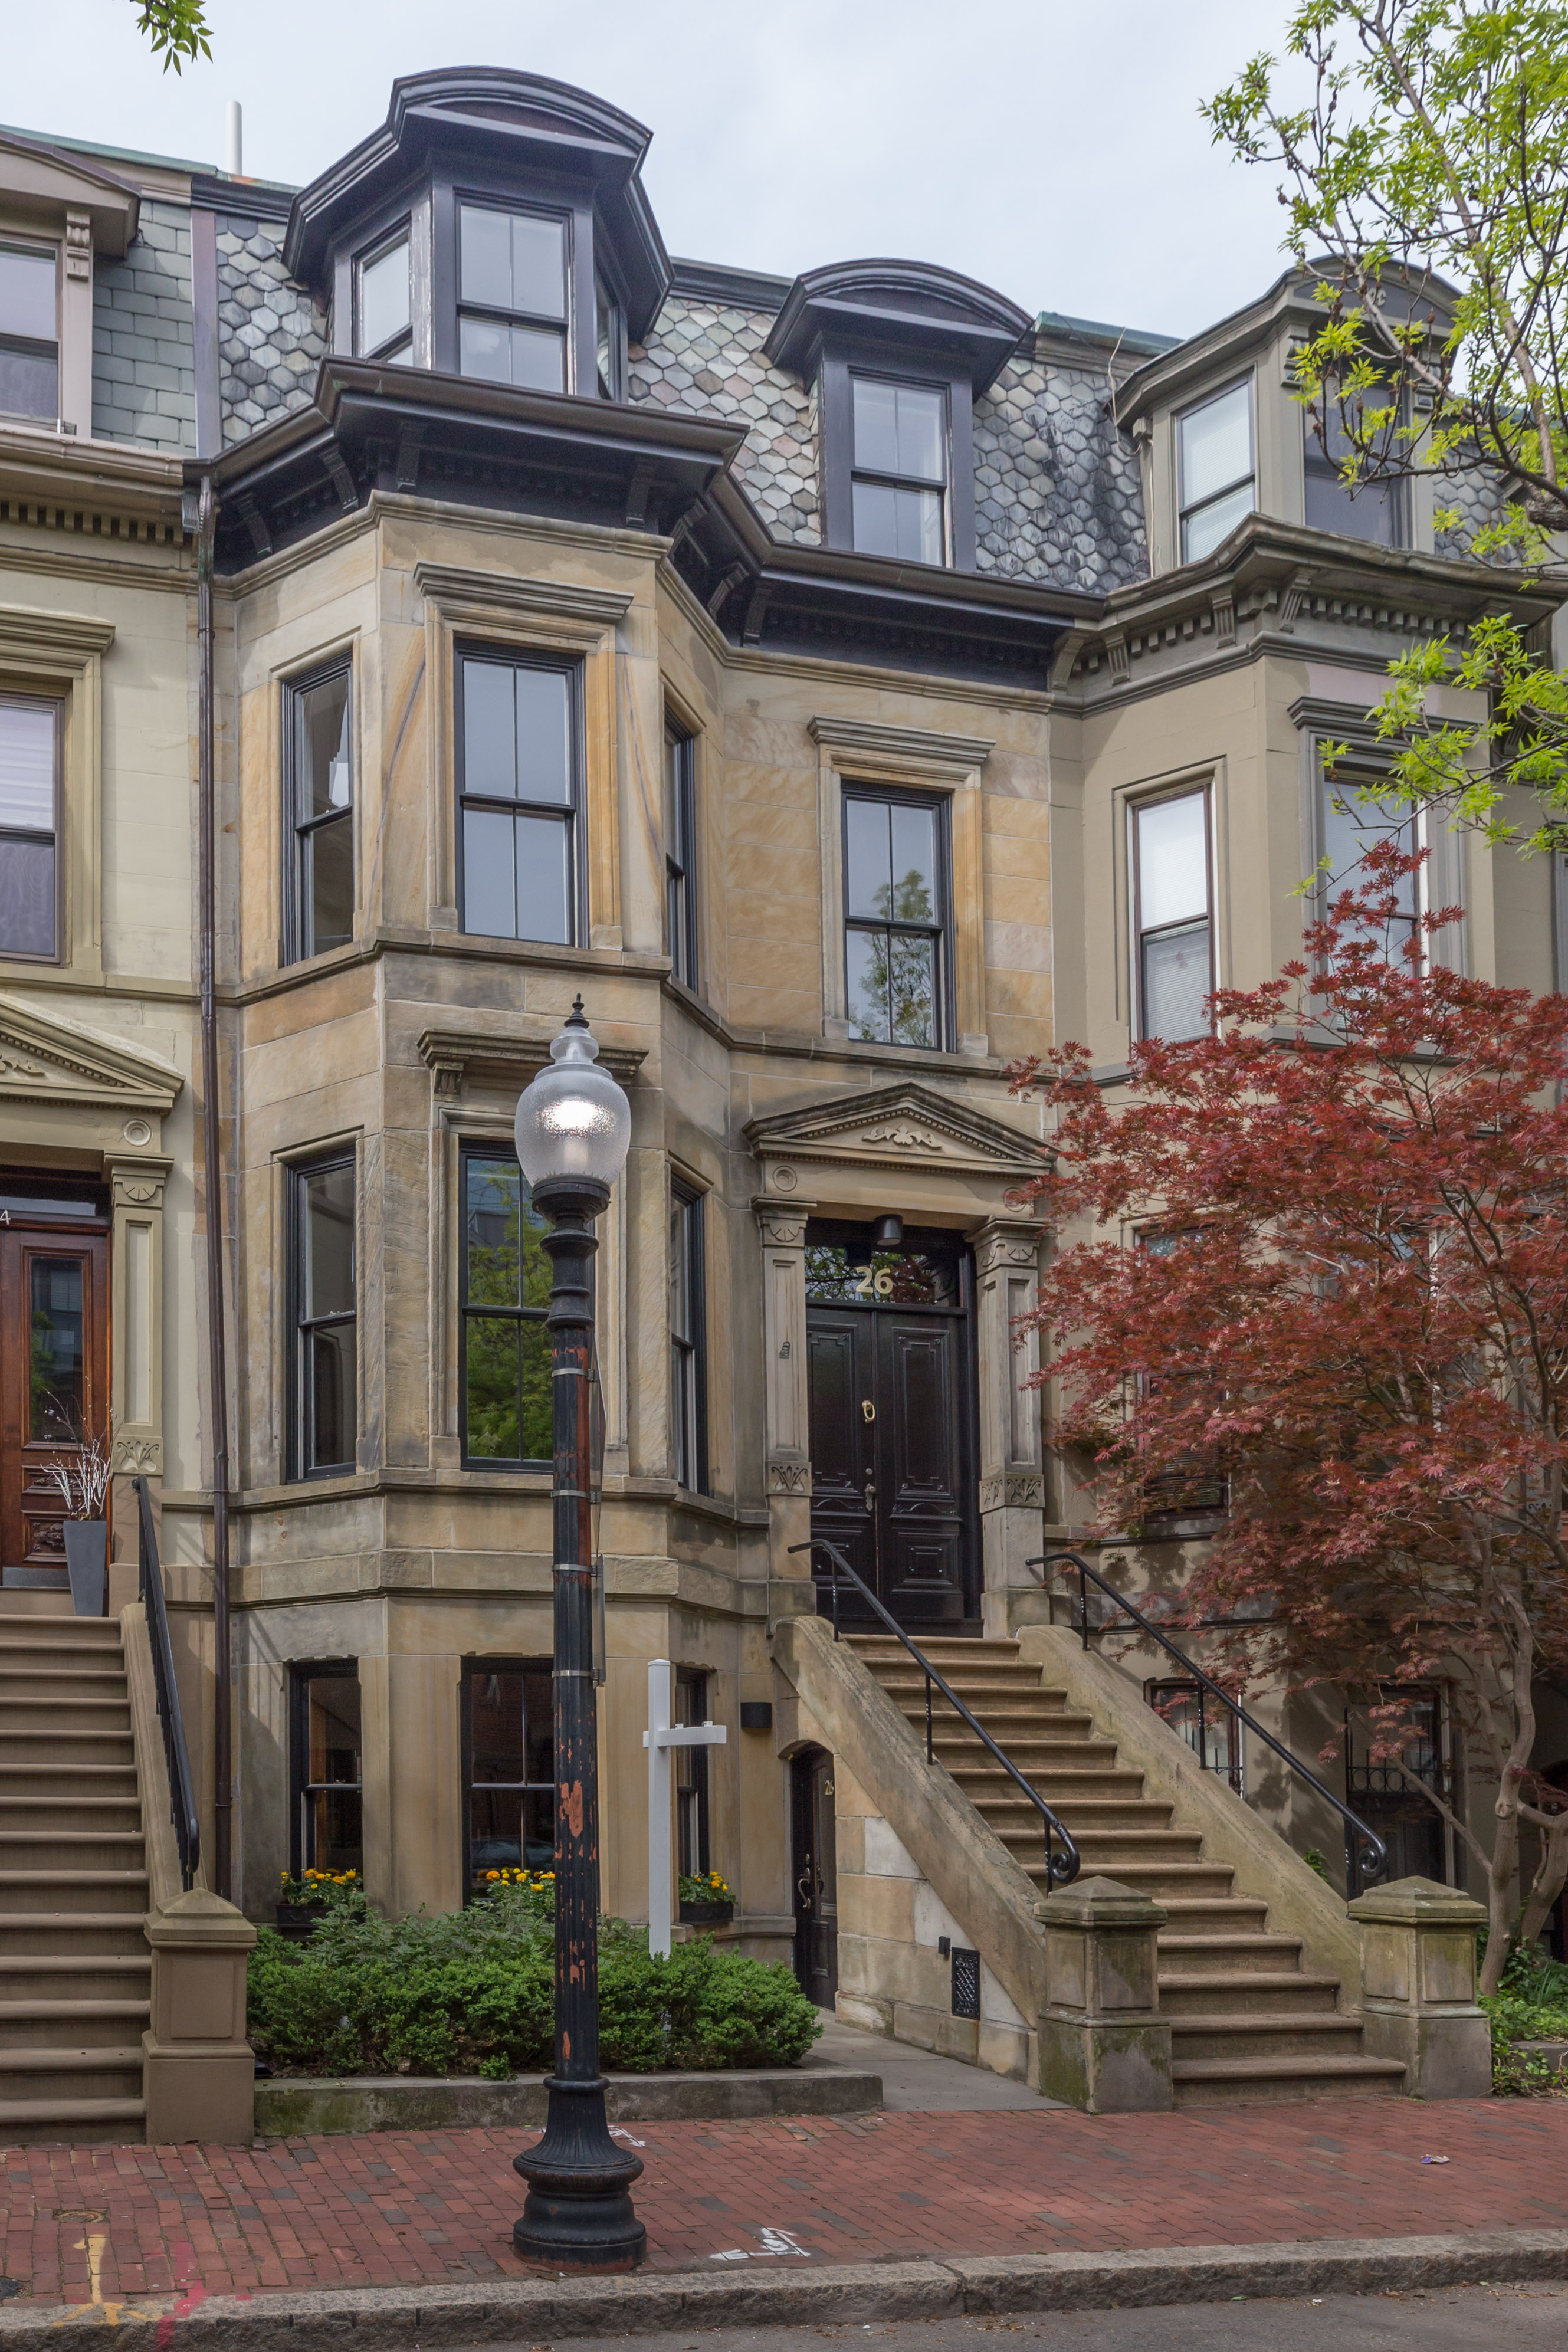 Luxury Home of the Week: South End property hits market for $6.95 million